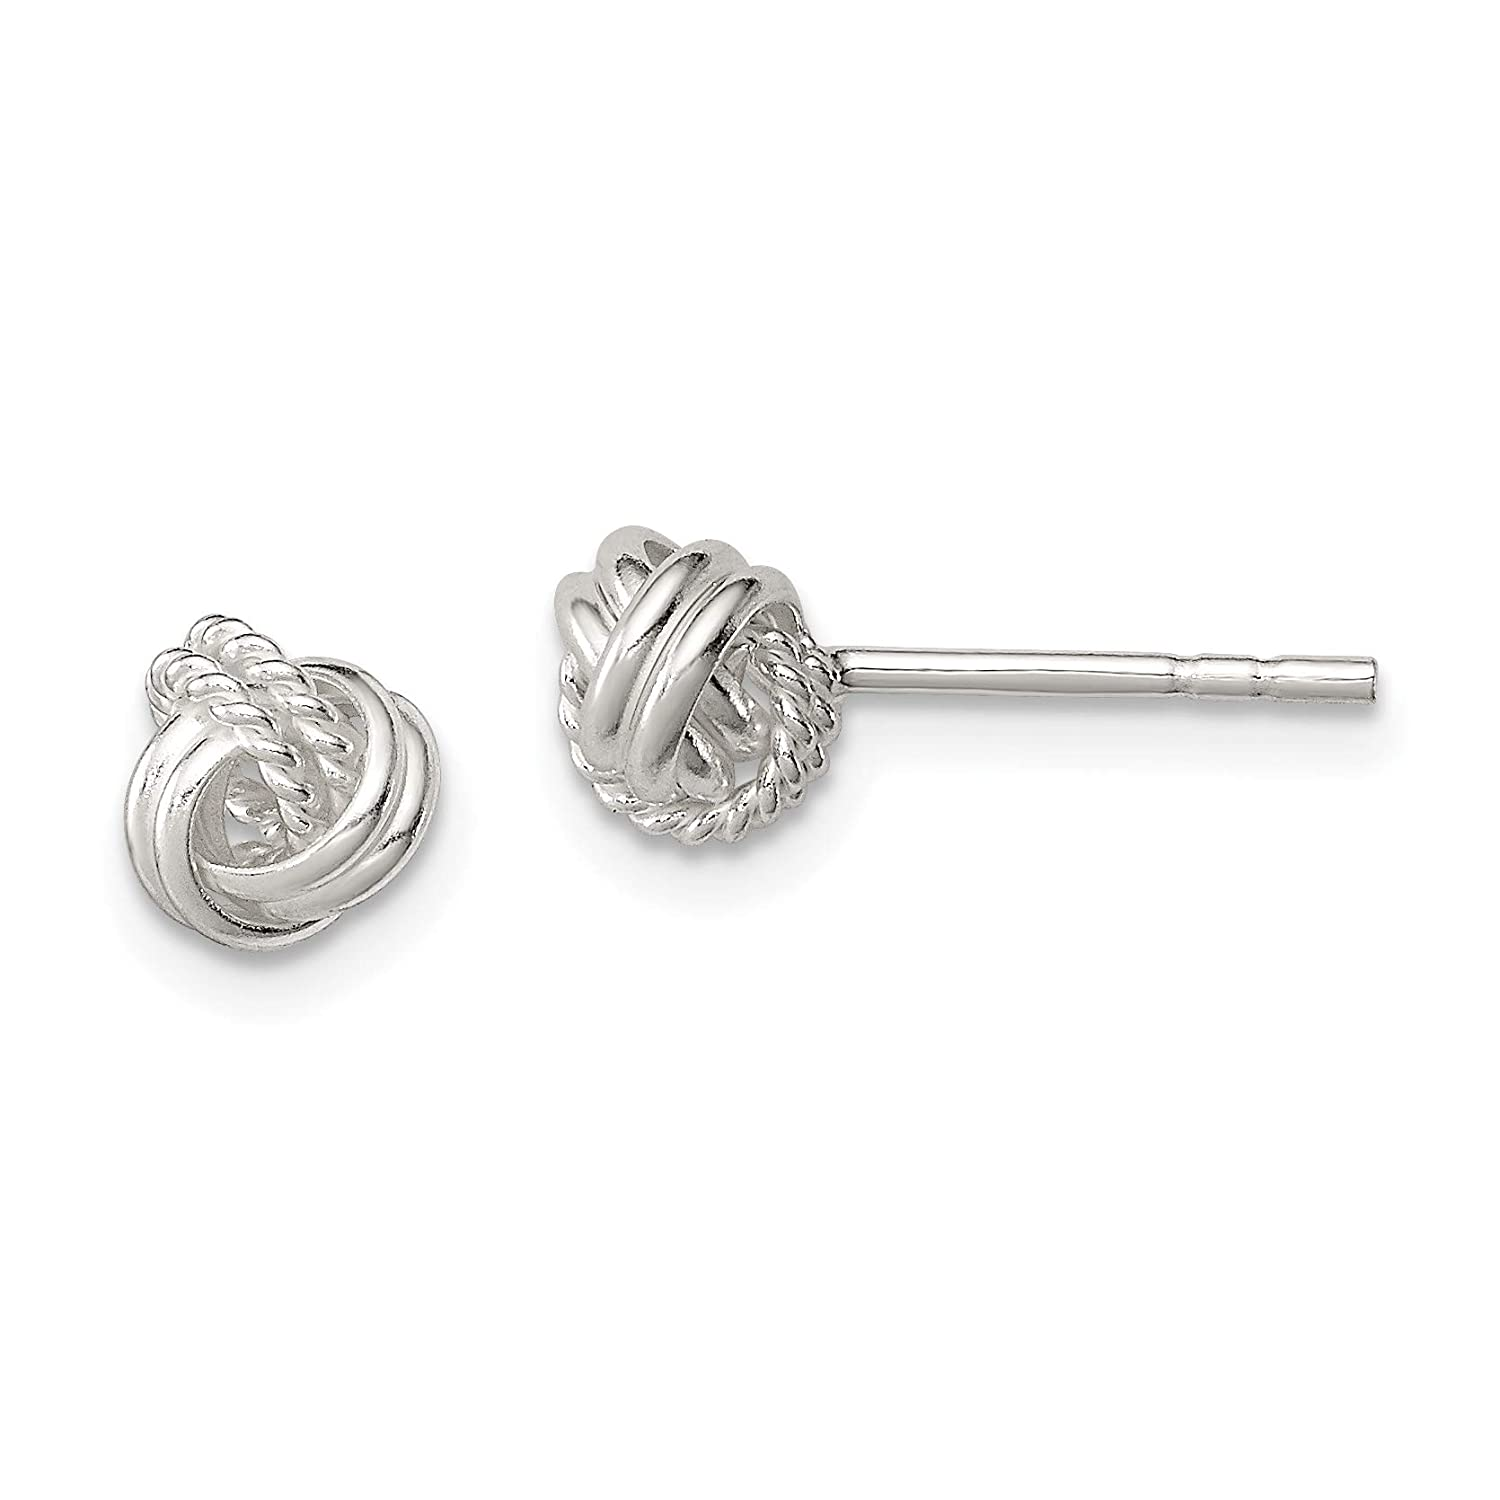 Approximate Measurements 7mm x 7mm Sterling Silver Polished and Textured Fancy Post Earrings